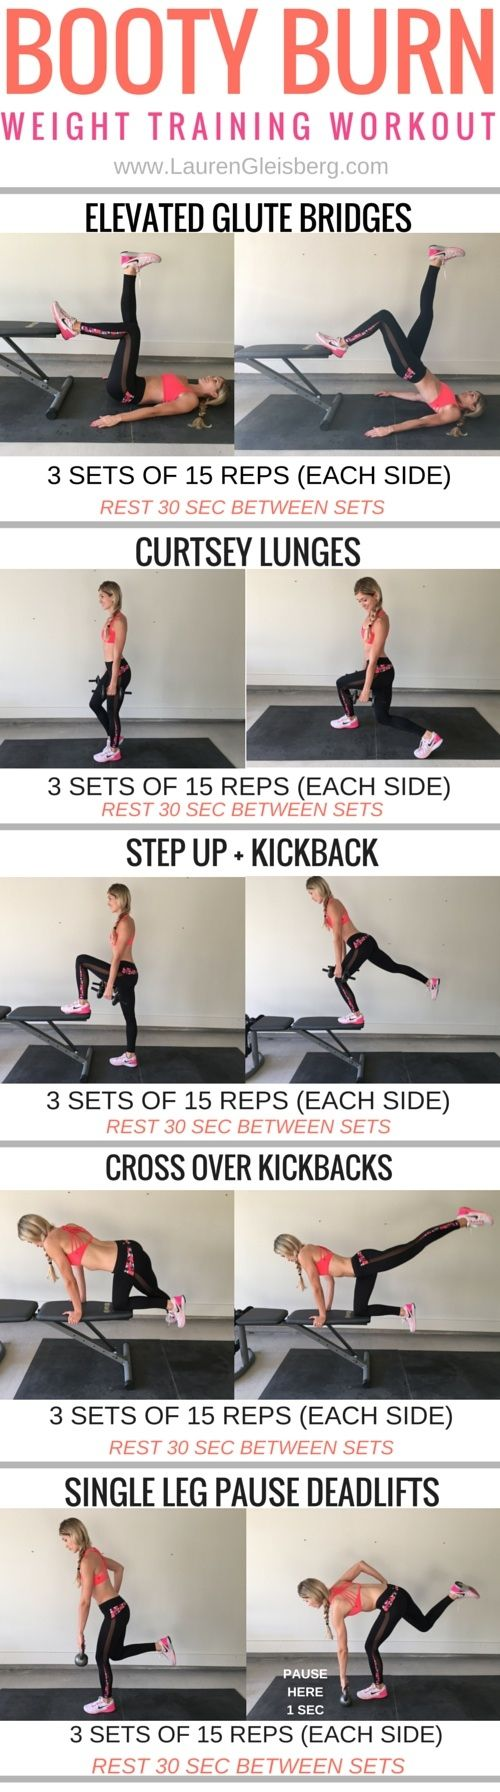 LEGS + BUTT weight training workout | click image for the full workout plan  www.LaurenGleisberg.com